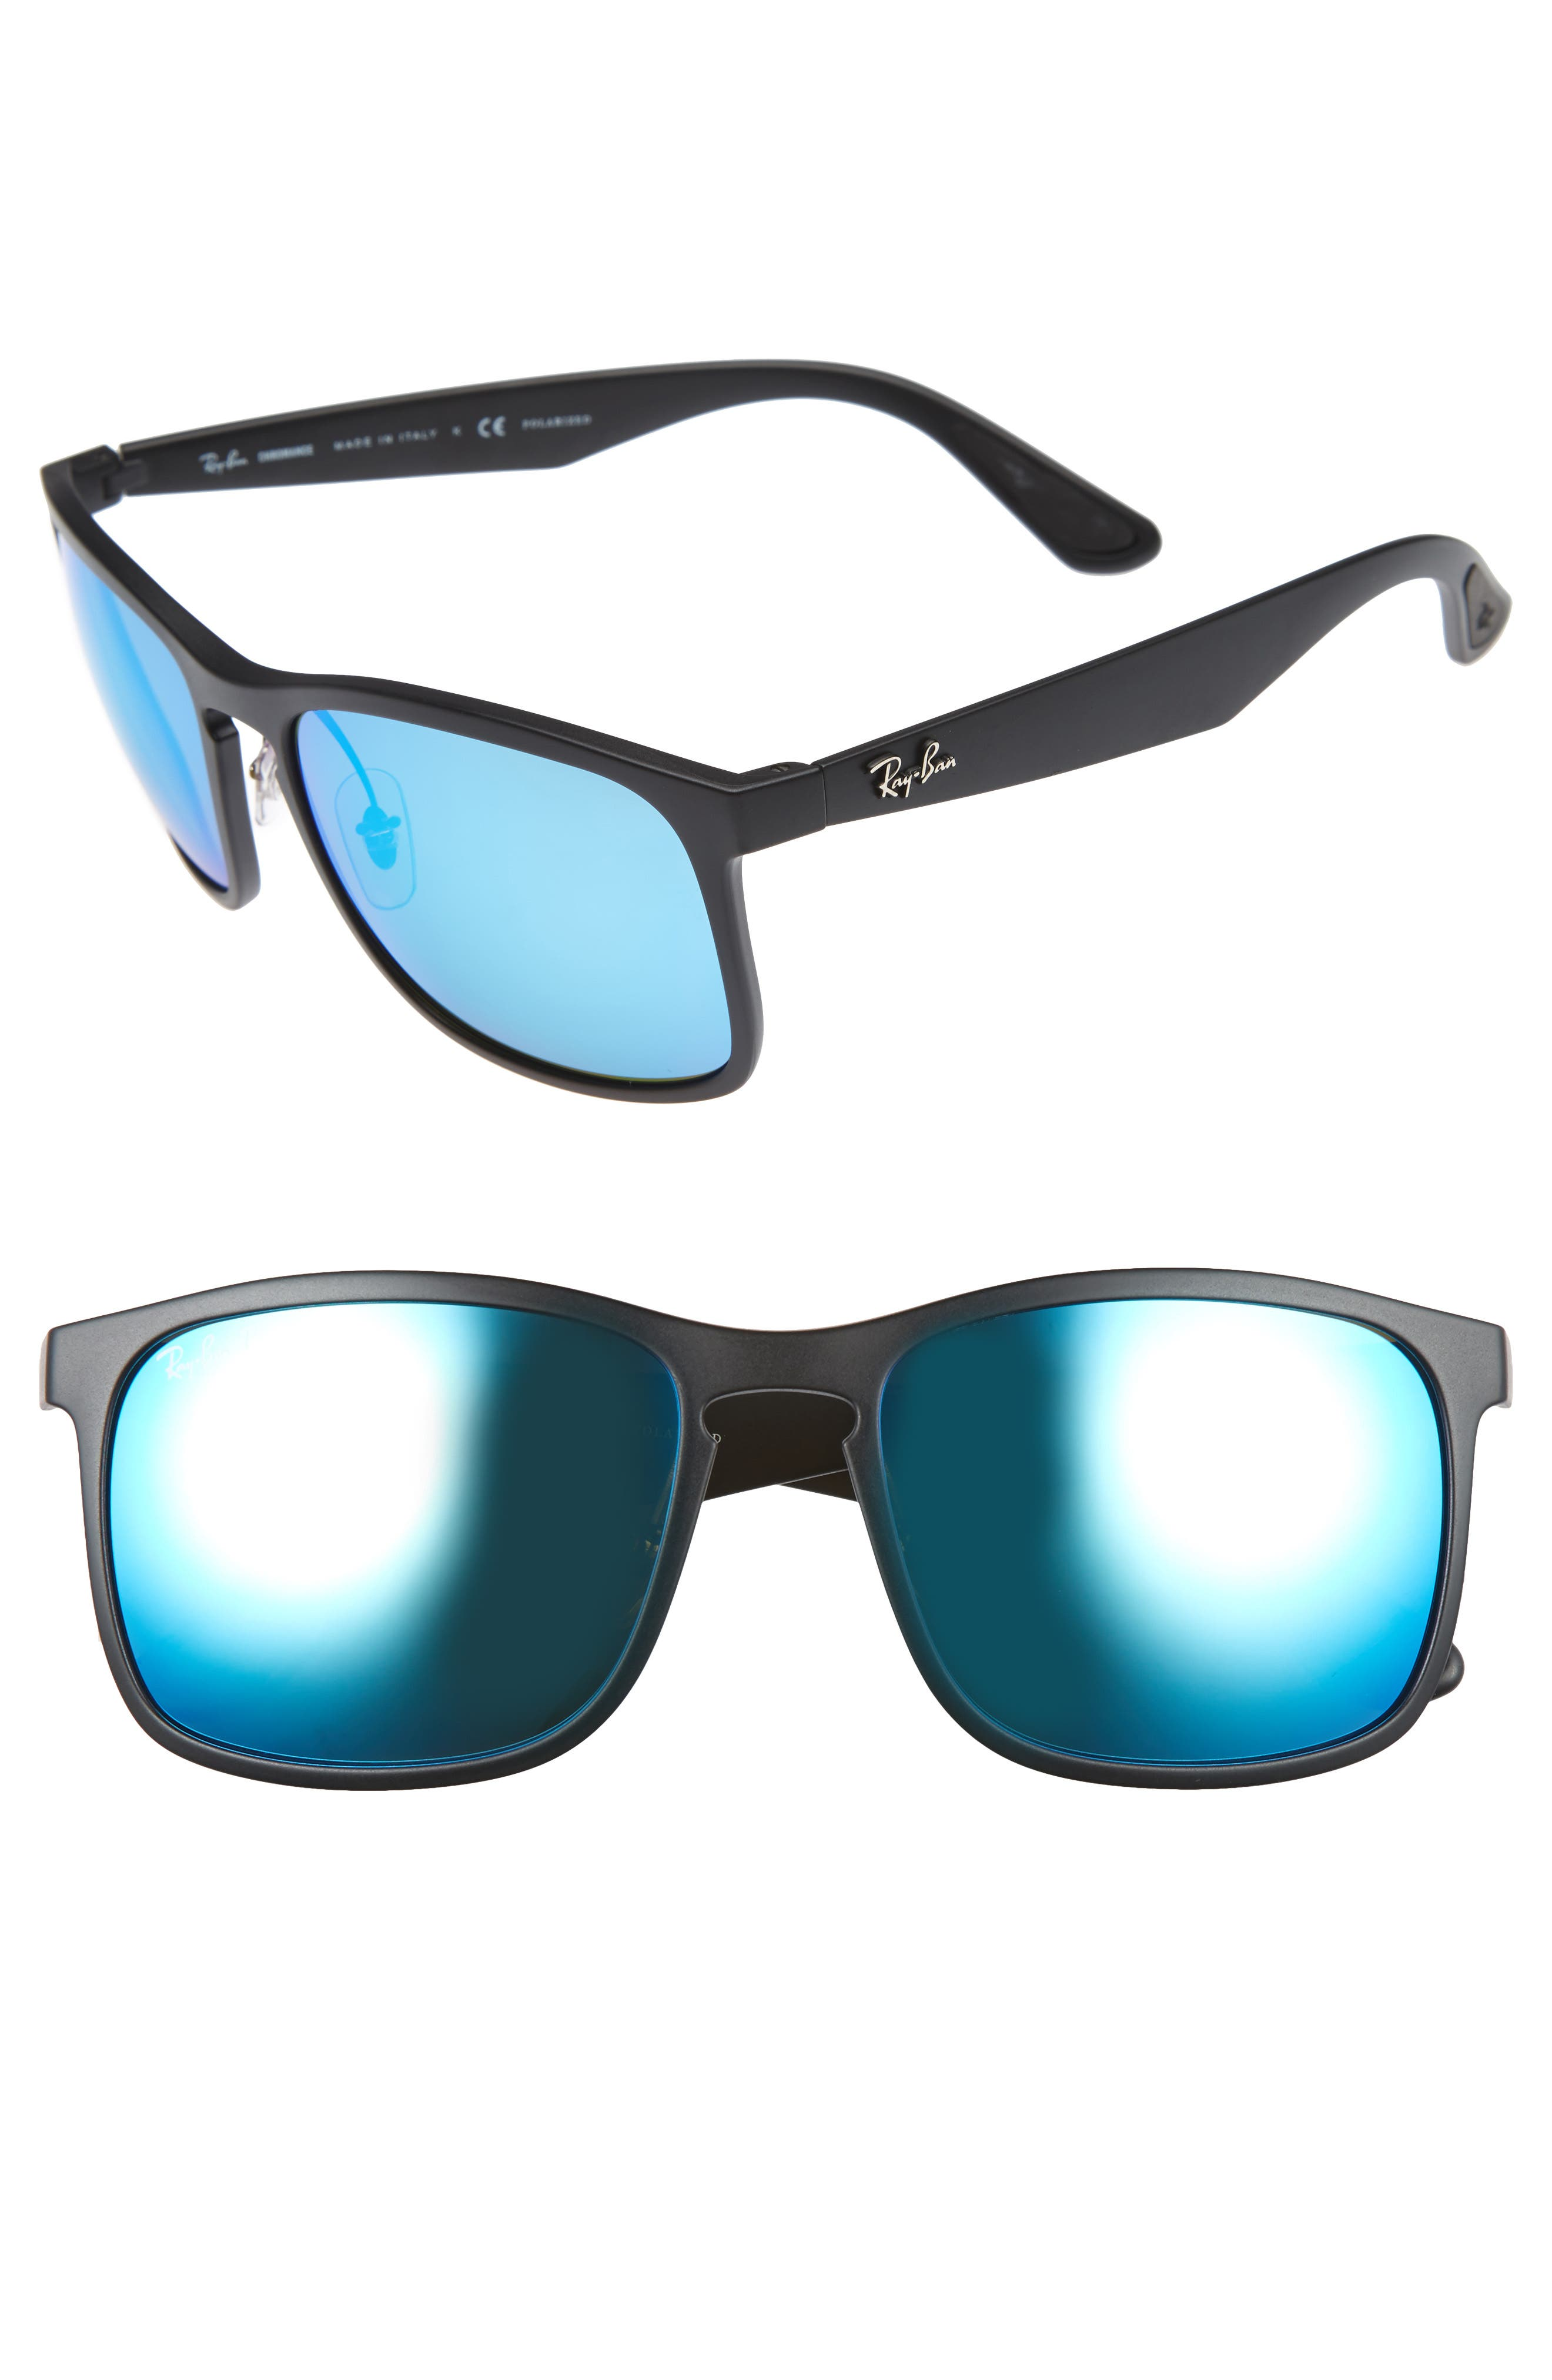 Main Image - Ray-Ban Tech 62mm Polarized Wayfarer Sunglasses